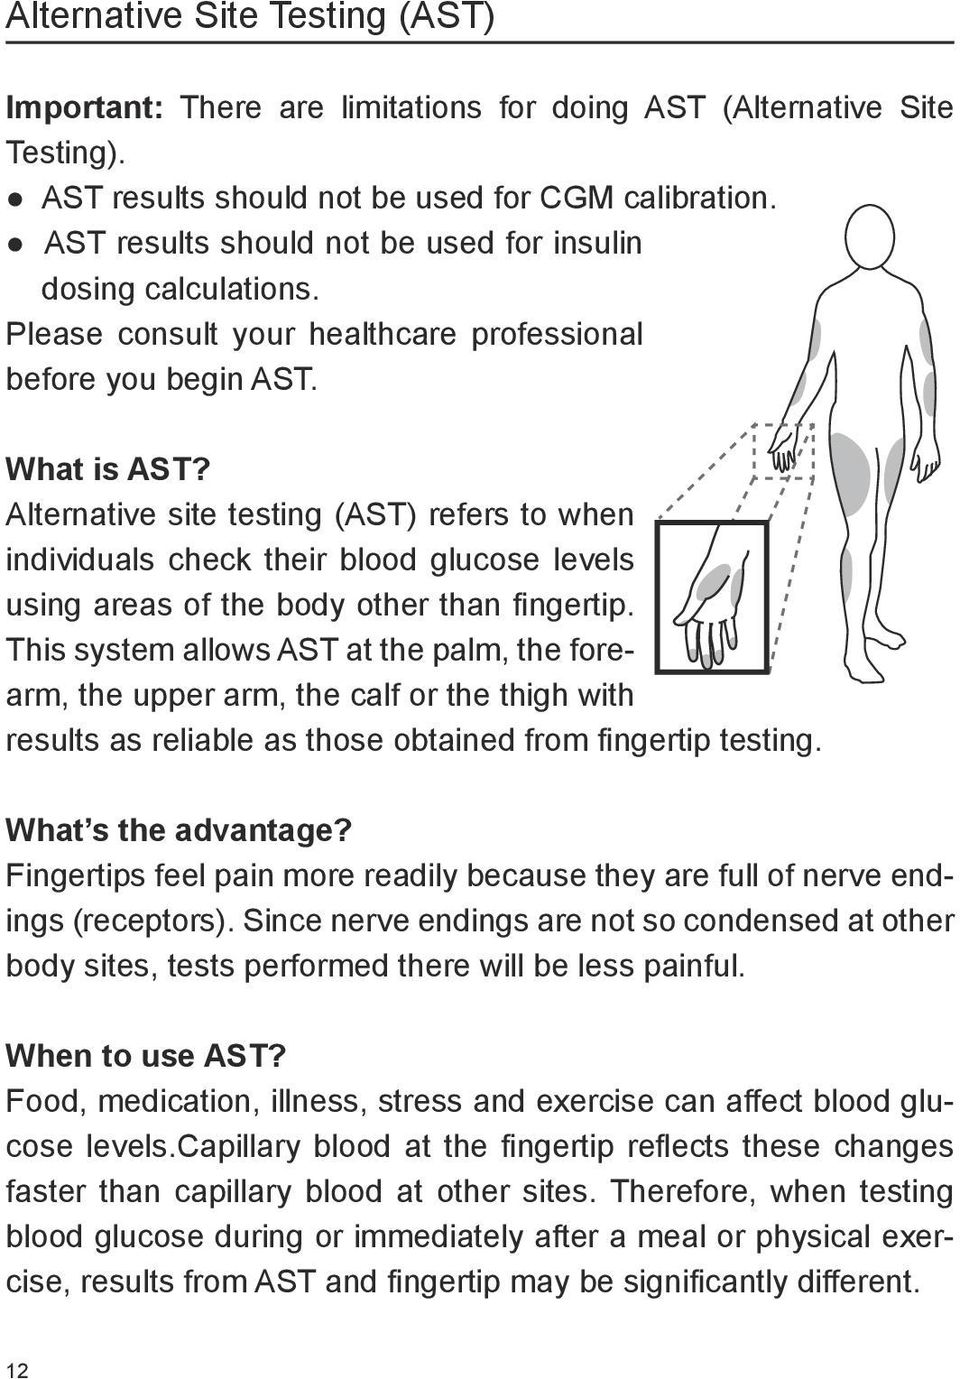 Alternative site testing (AST) refers to when individuals check their blood glucose levels using areas of the body other than fingertip.